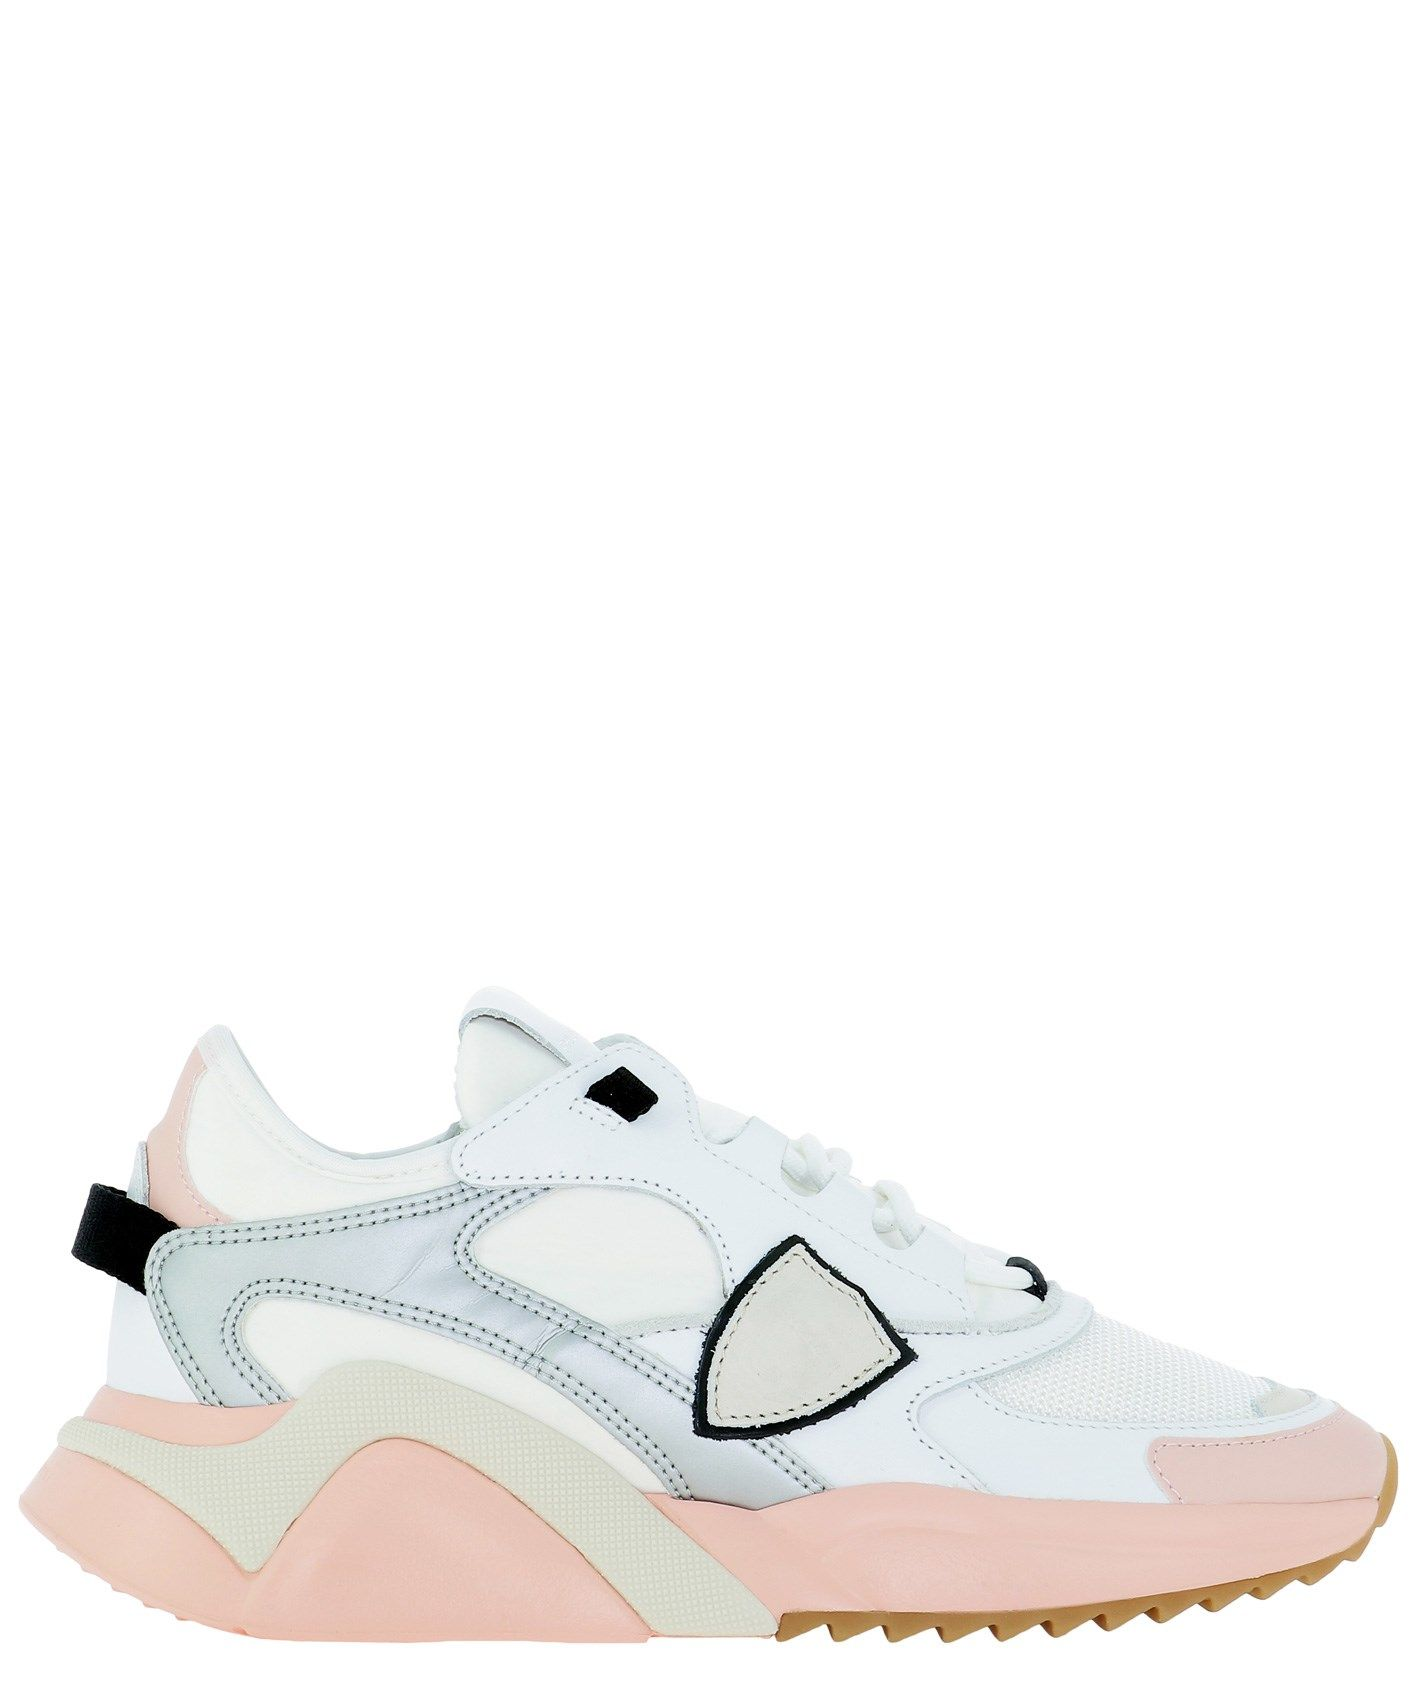 Philippe Model PHILIPPE MODEL WOMEN'S WHITE OTHER MATERIALS SNEAKERS